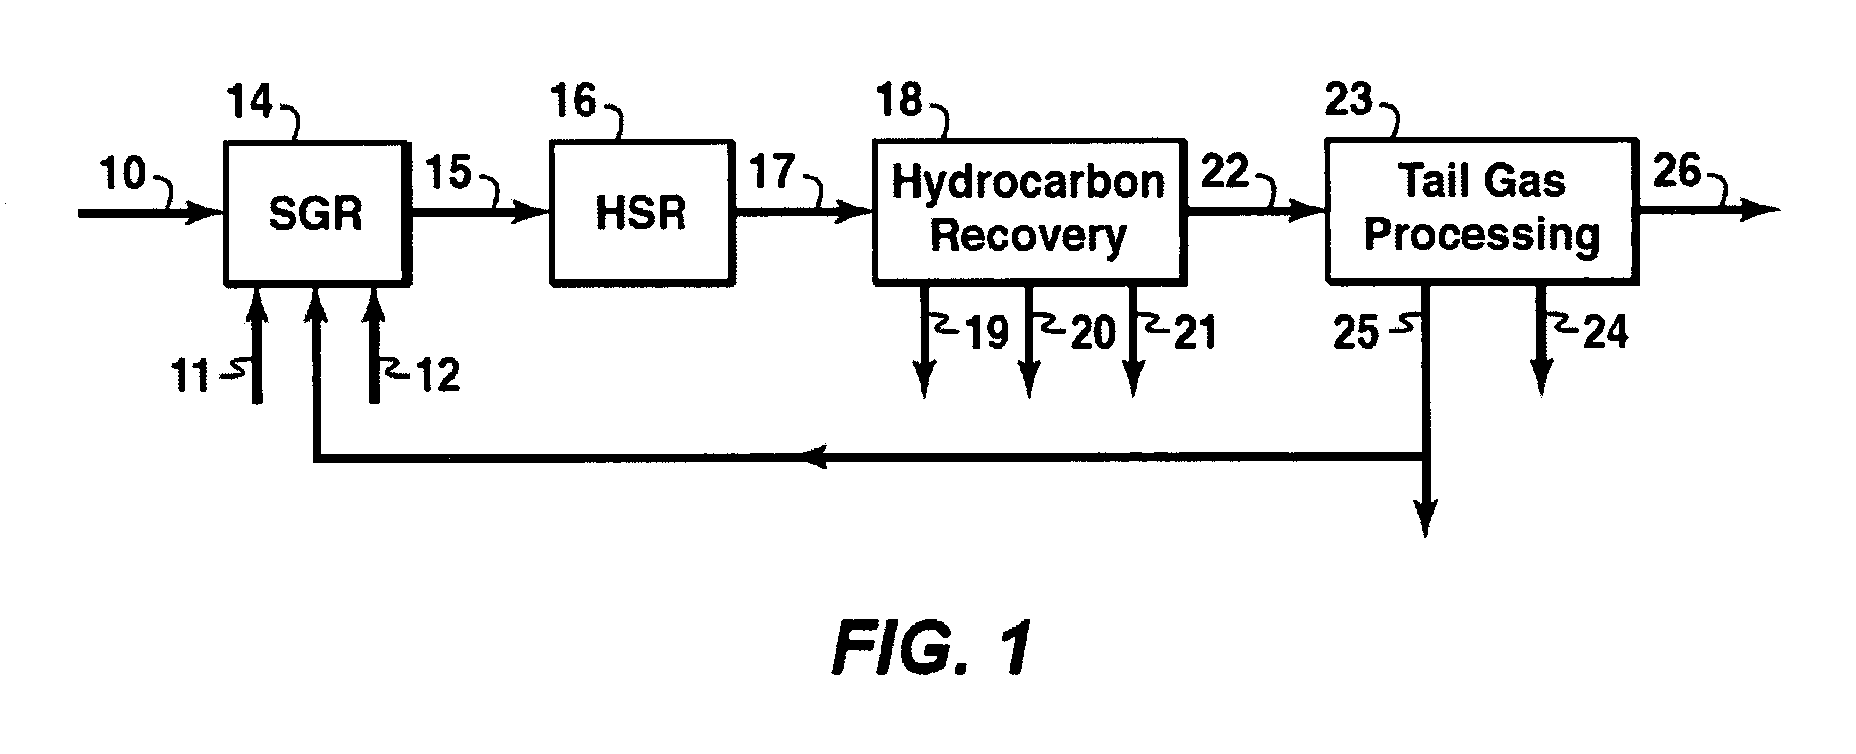 Patent Us7910629 Light Ends Recovery Process For A Gtl Plant Flow Diagram Drawing